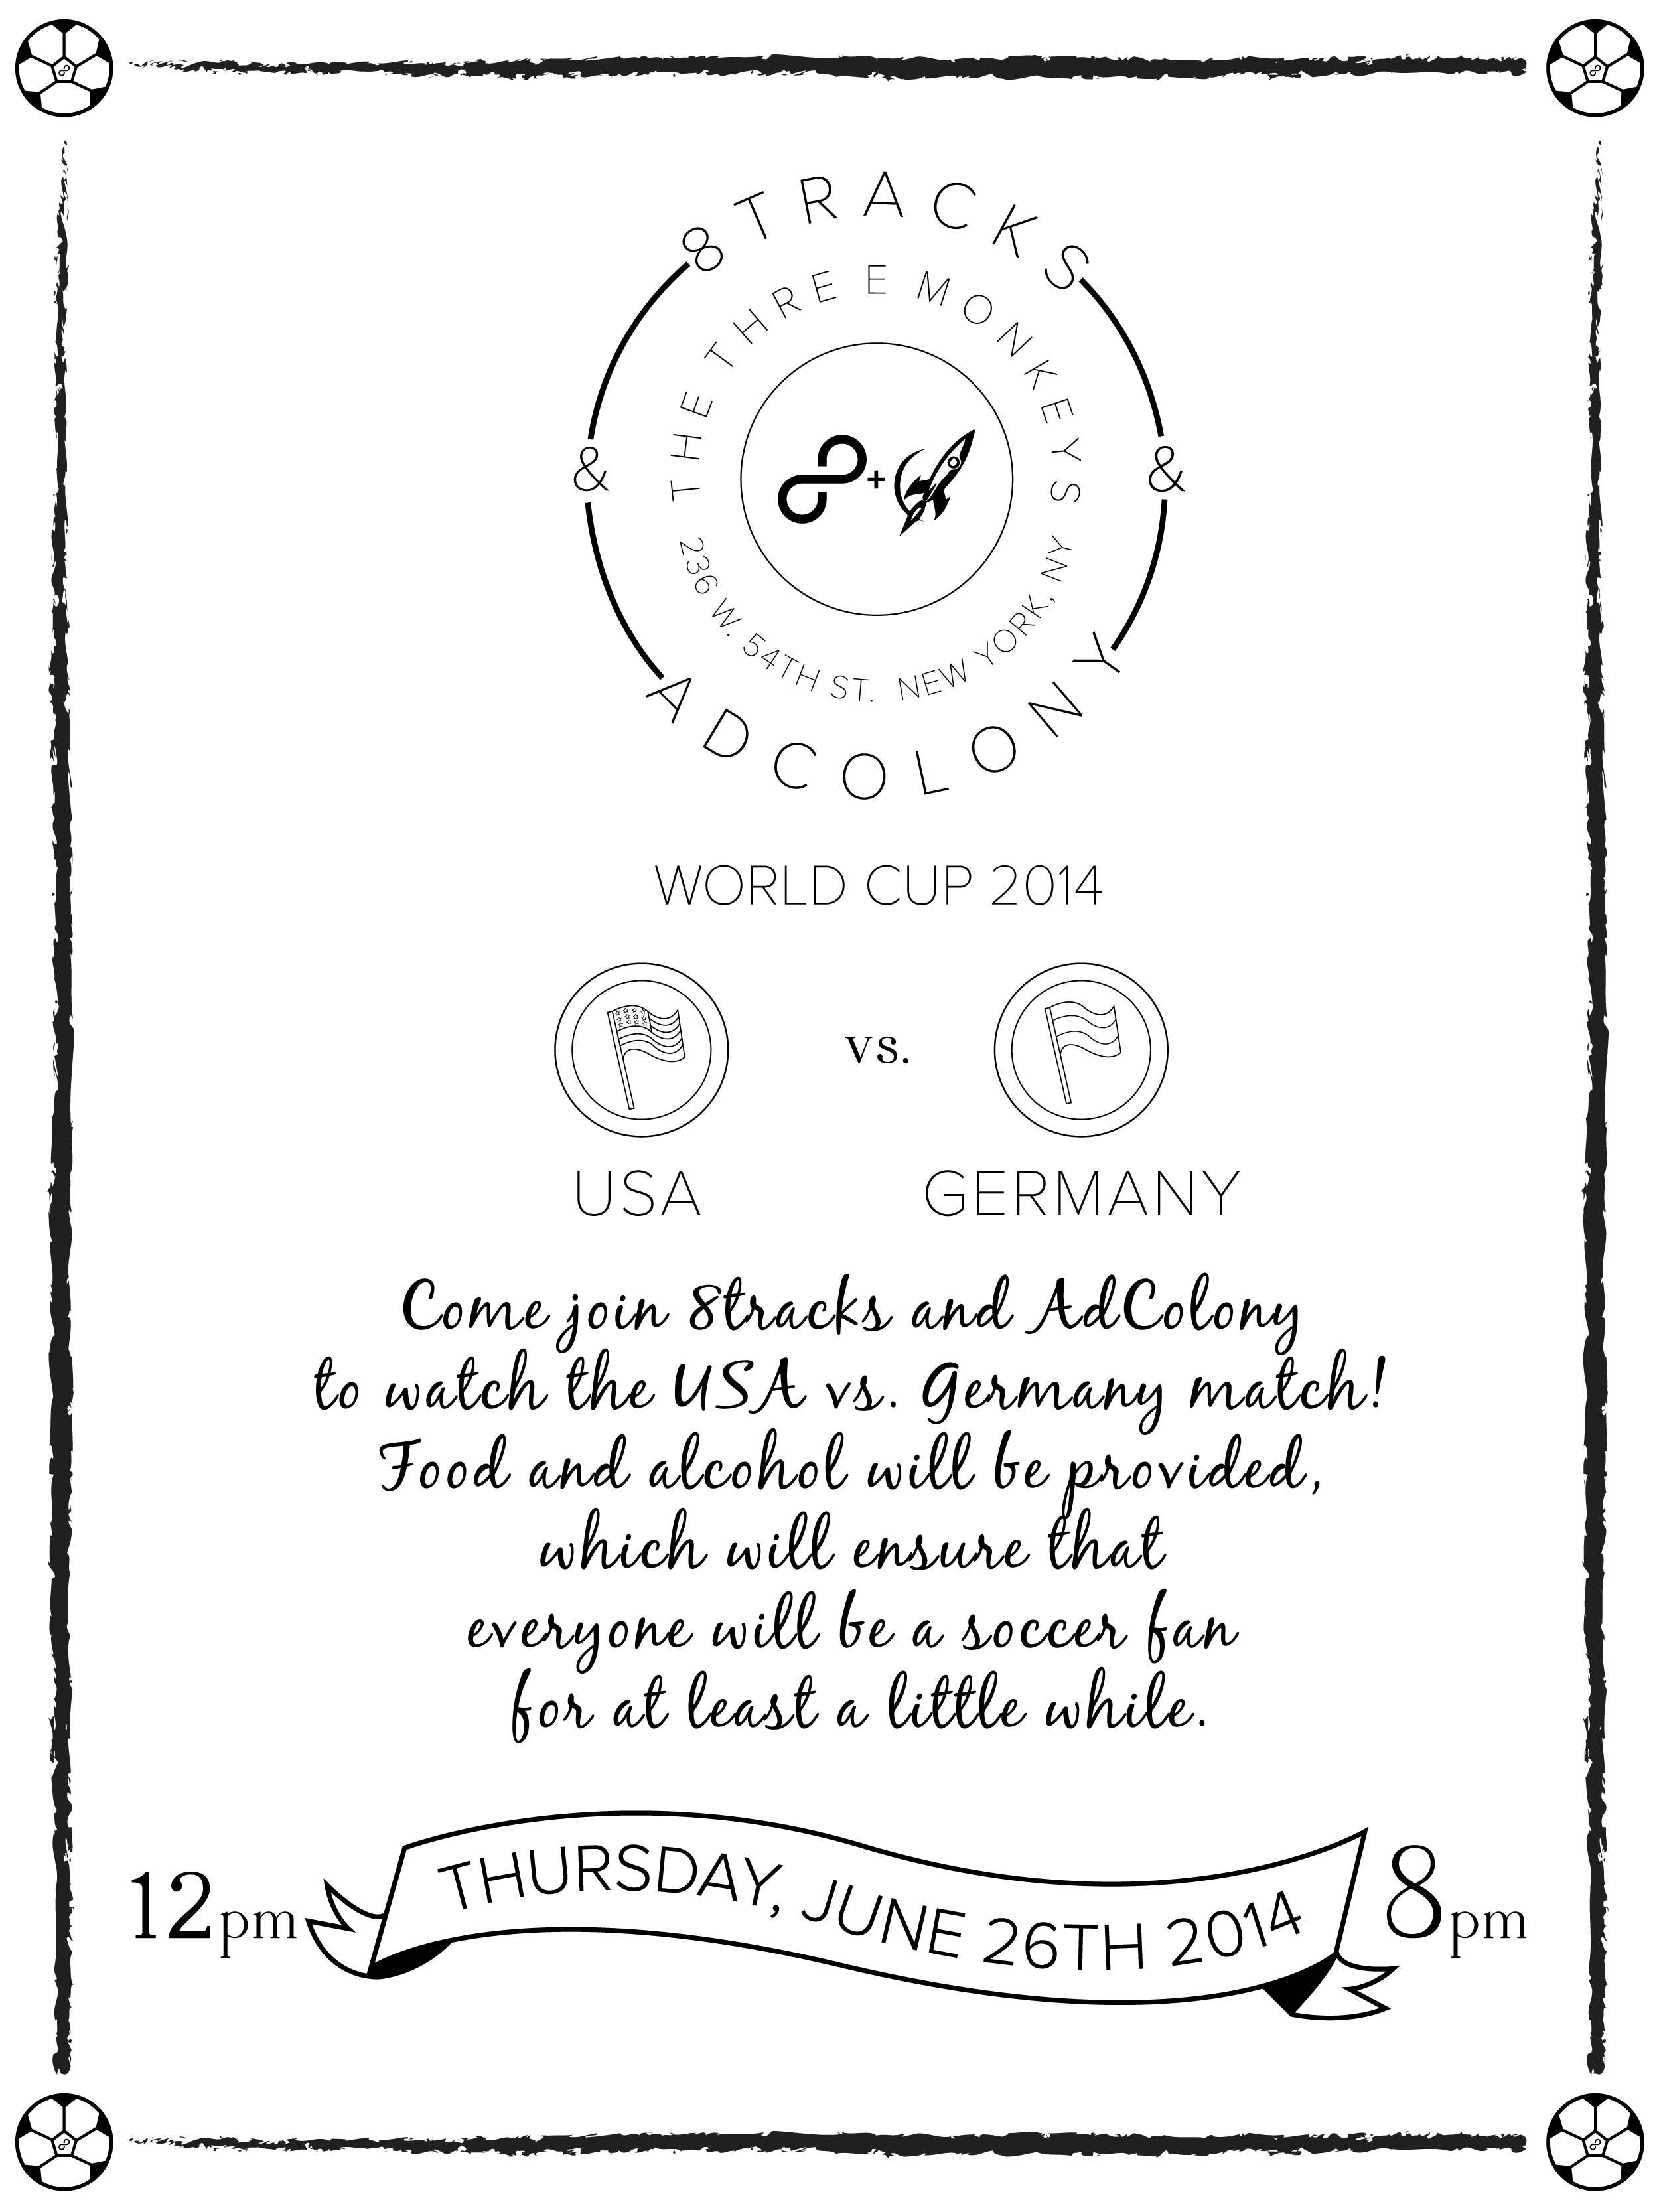 worldcupinvite-whitexblk-01.png